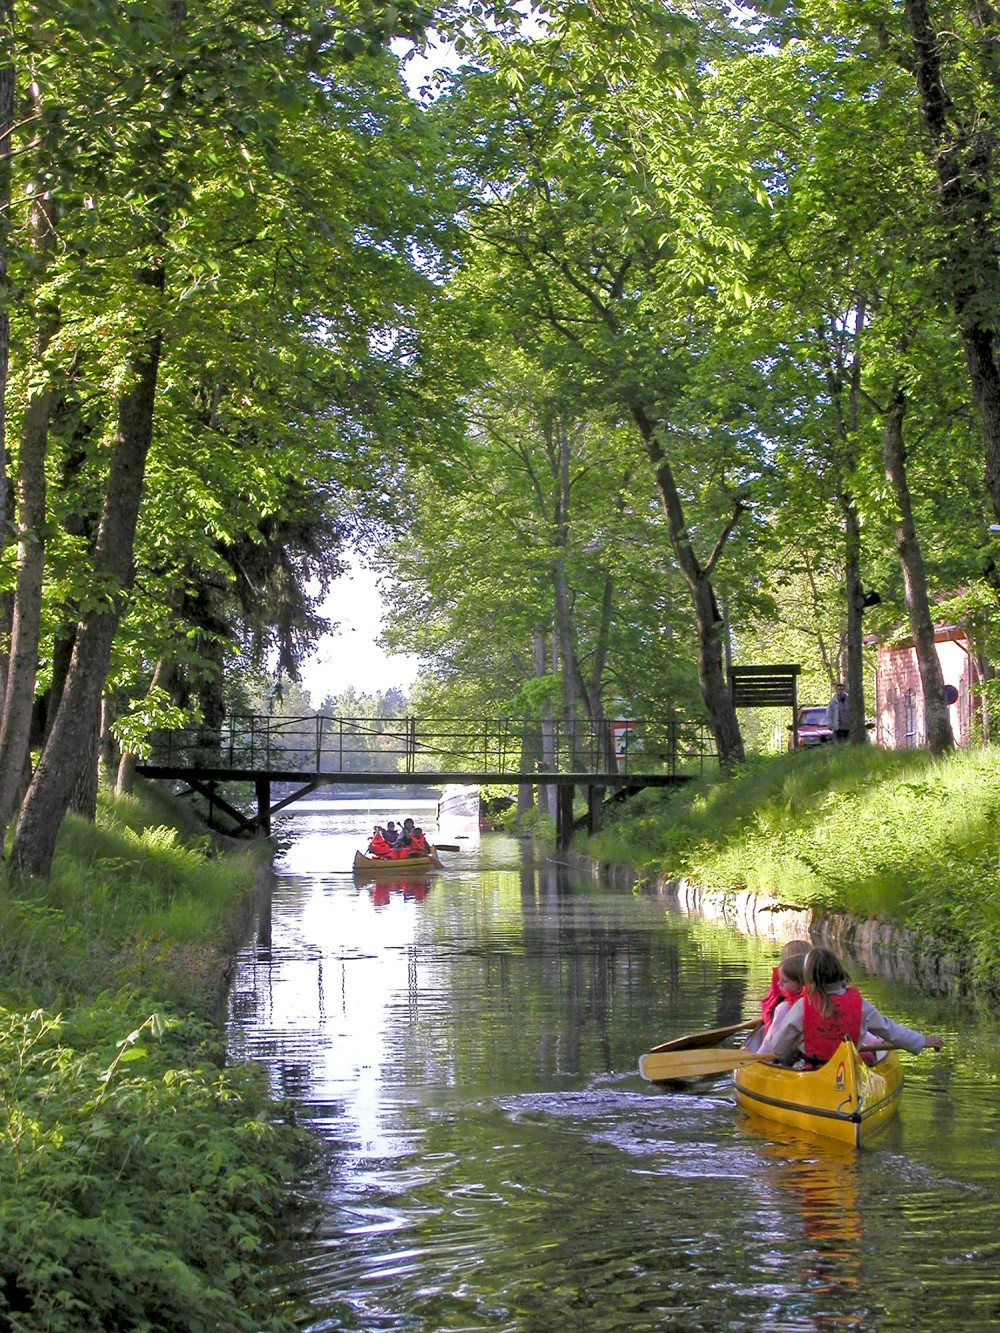 The Strömsholm Canal is 10 kilometres long and has 26 locks. At the Skantzen area in Hallstahammar (pictured), you can go canoeing. – © Ekomuseum Bergslagen